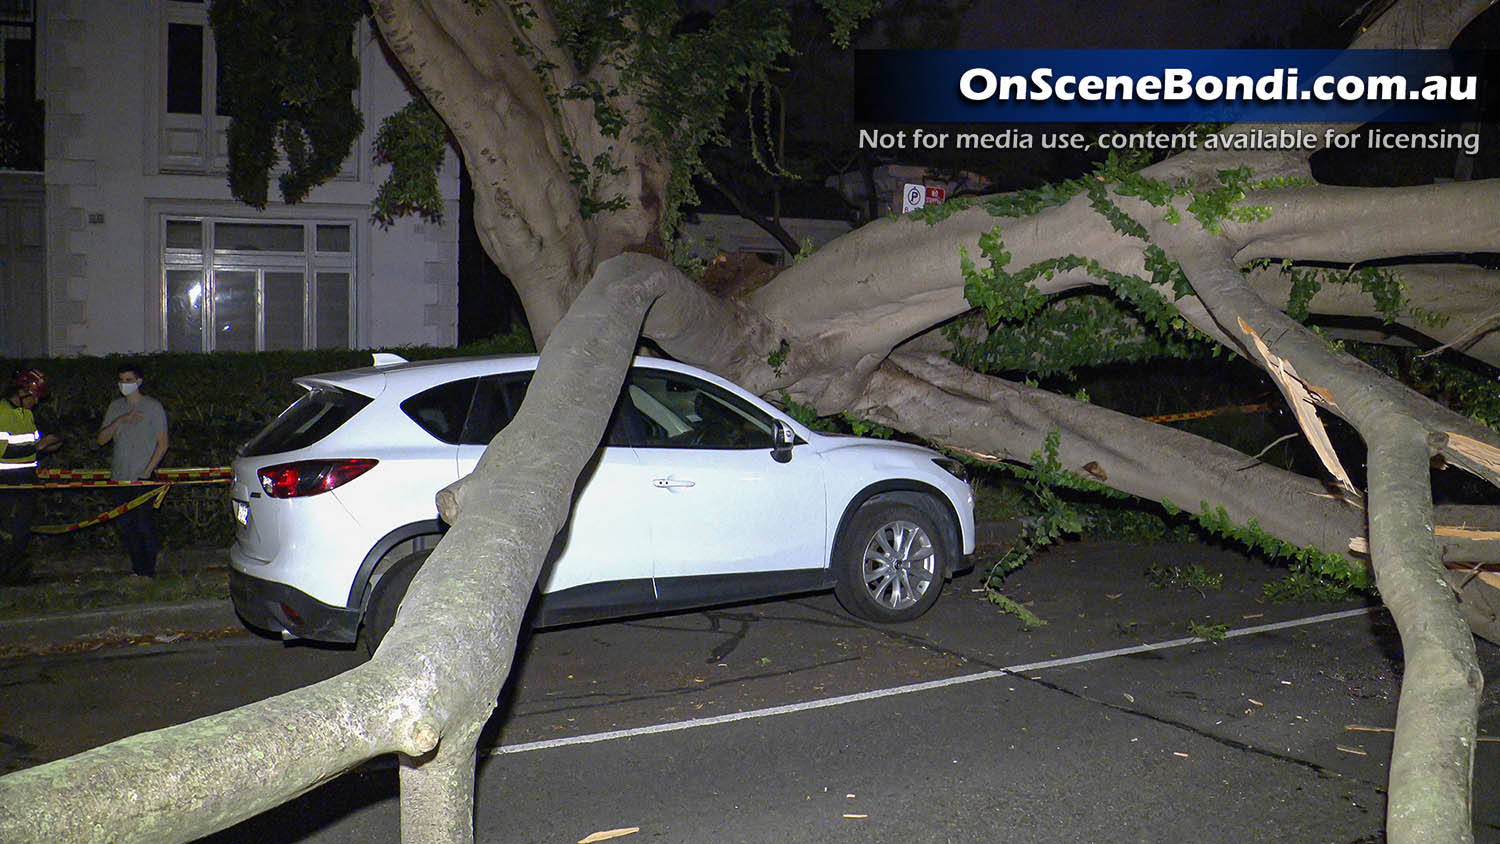 Tree crashes onto roadway cutting power to homes in Woollahra